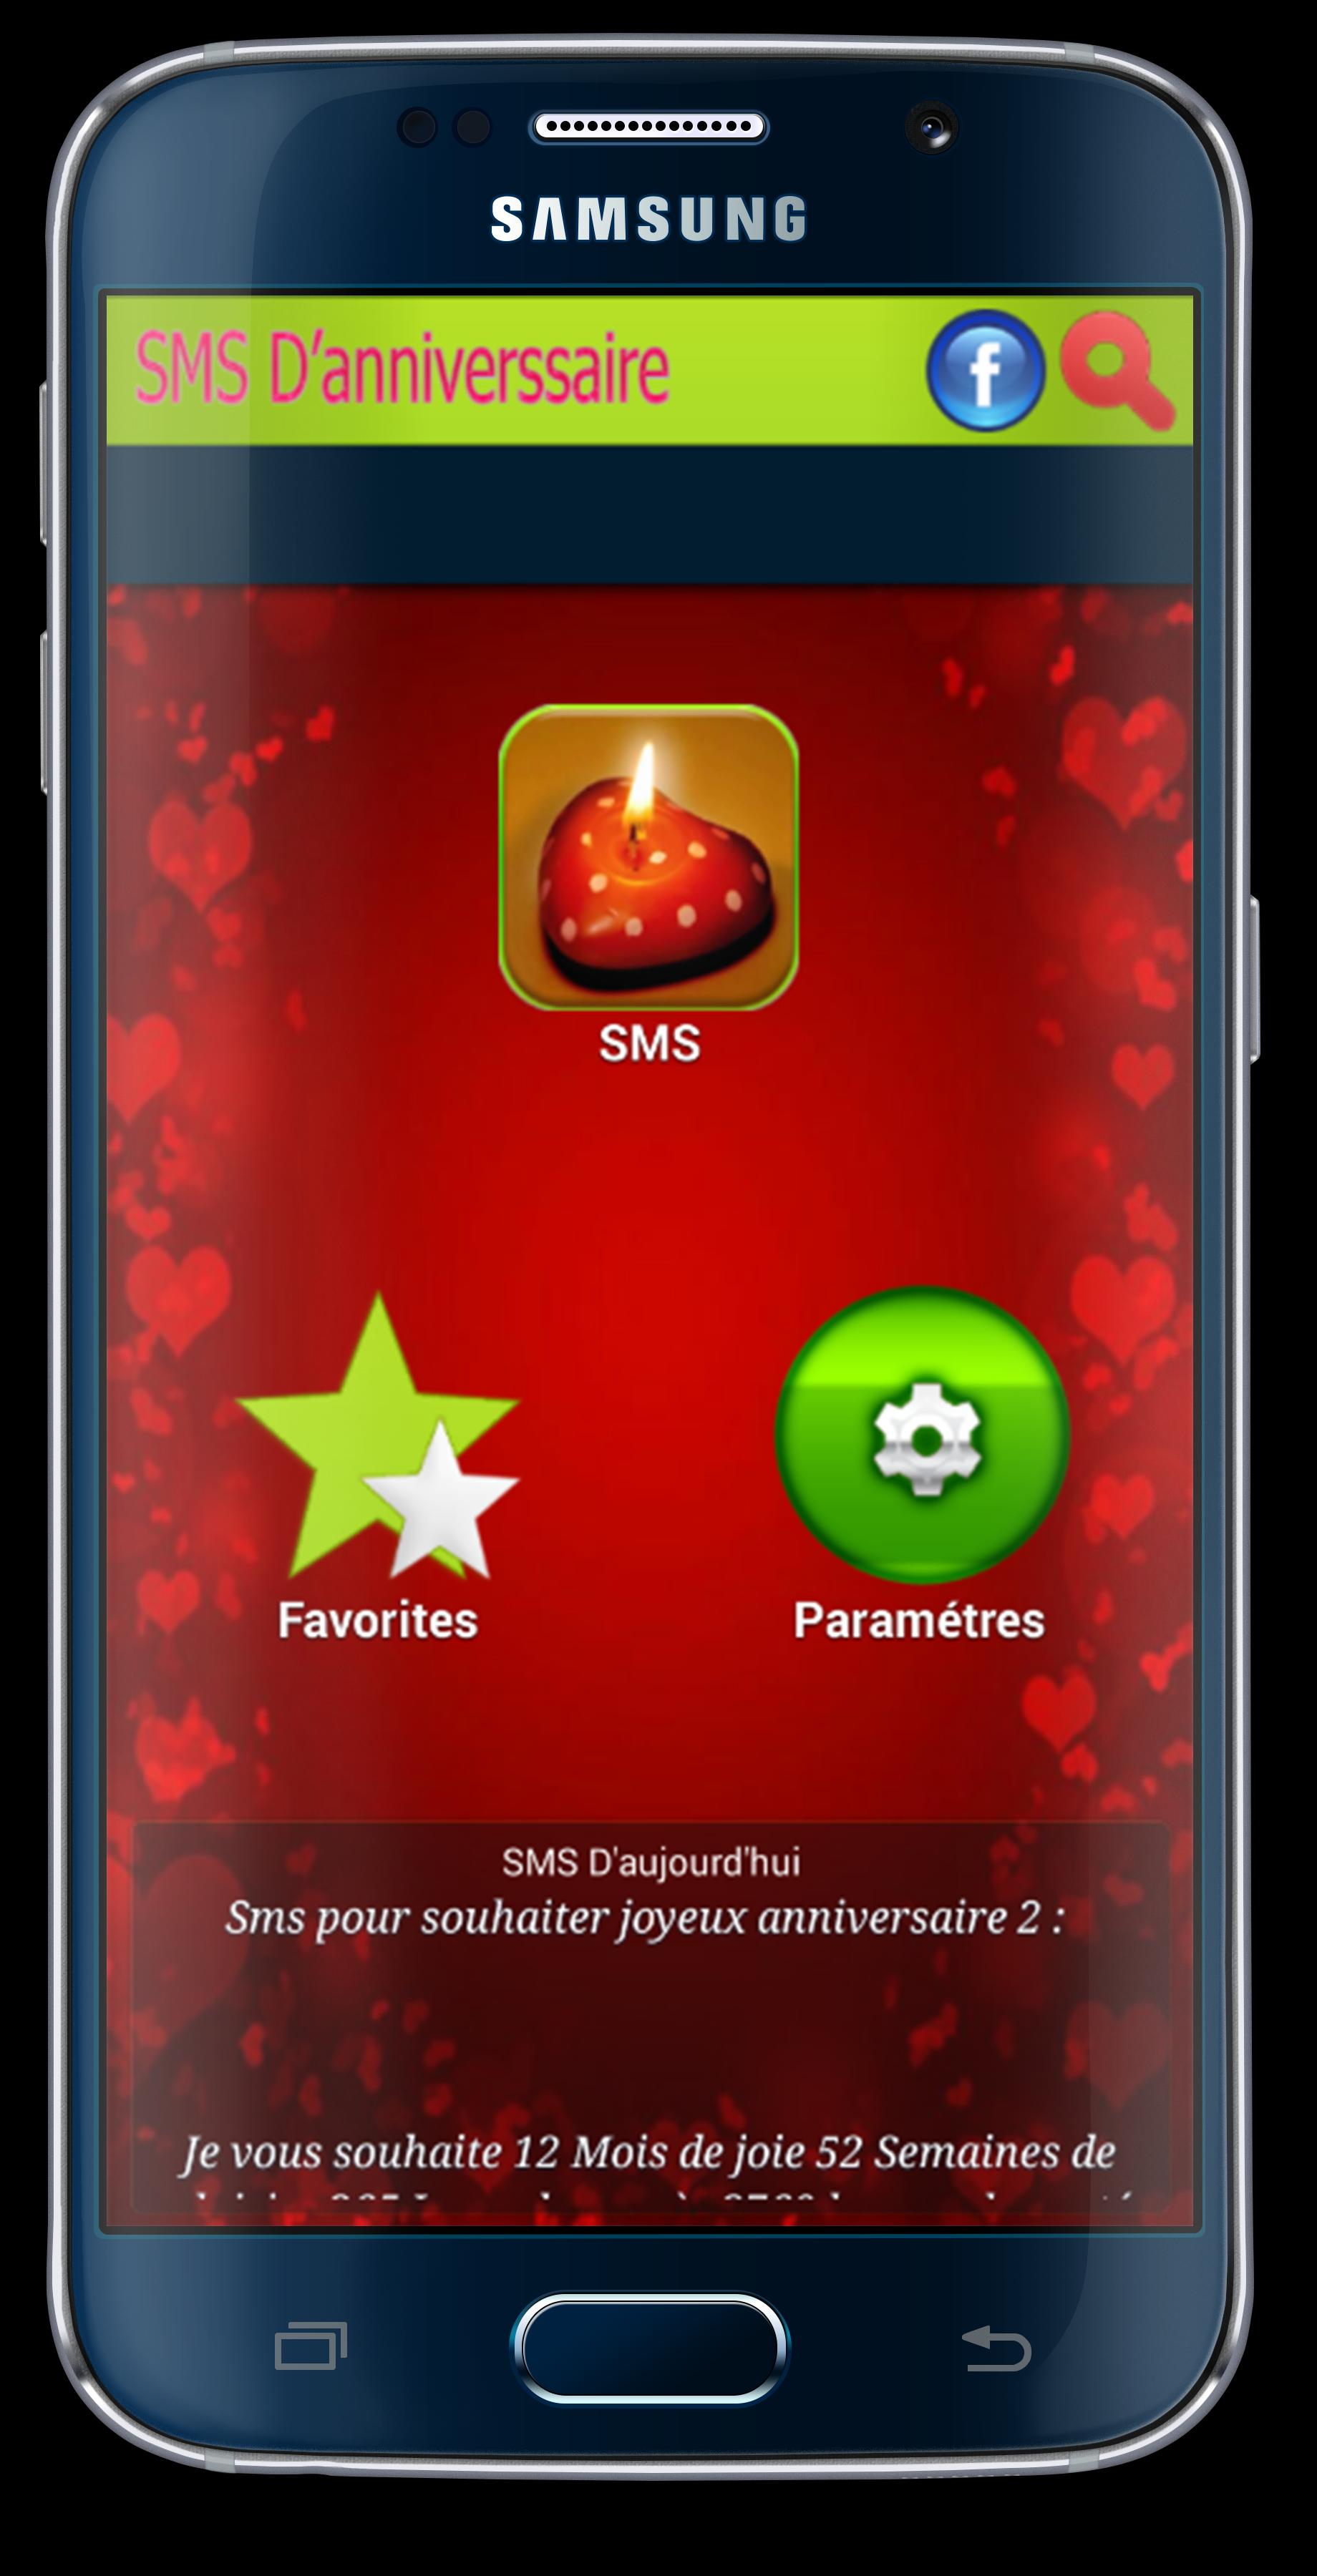 Sms Danniversaire Et Damour For Android Apk Download